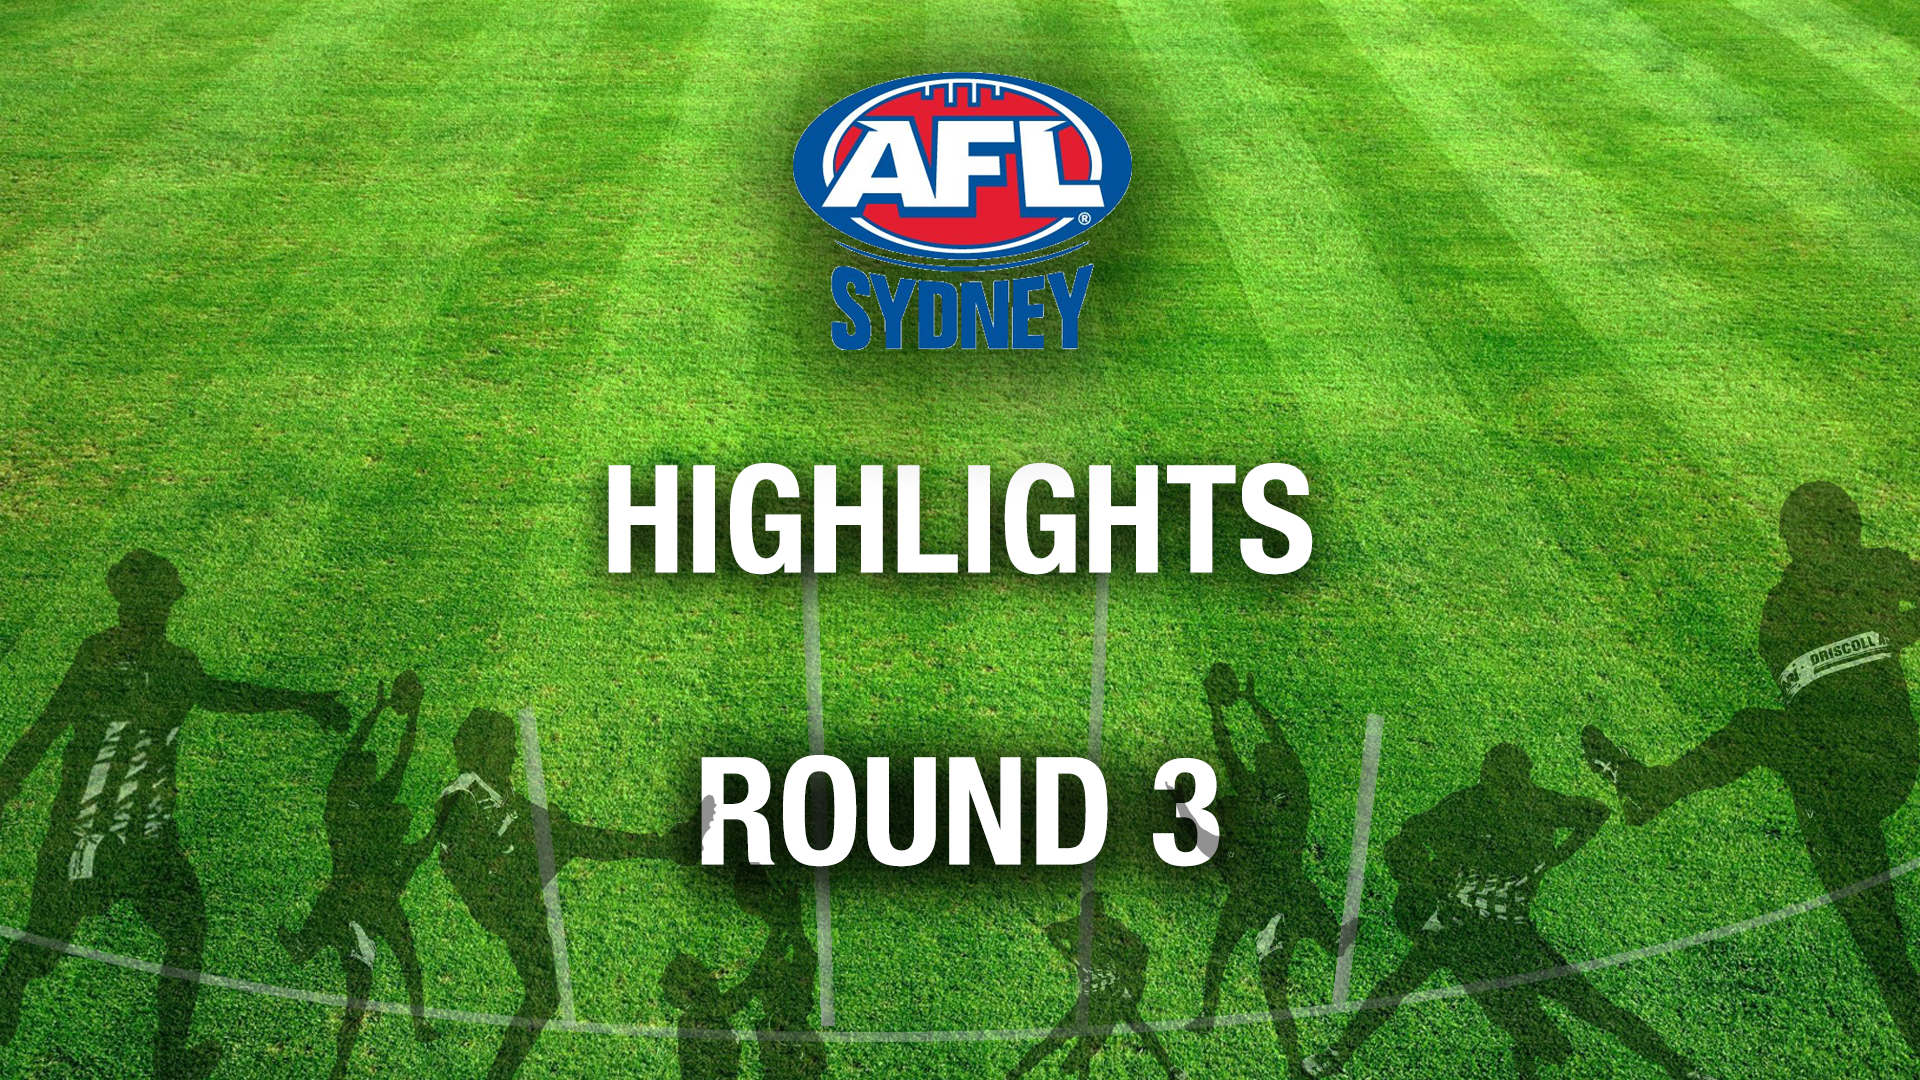 AFL SYDNEY 2018 RD3 HIGHLIGHTS